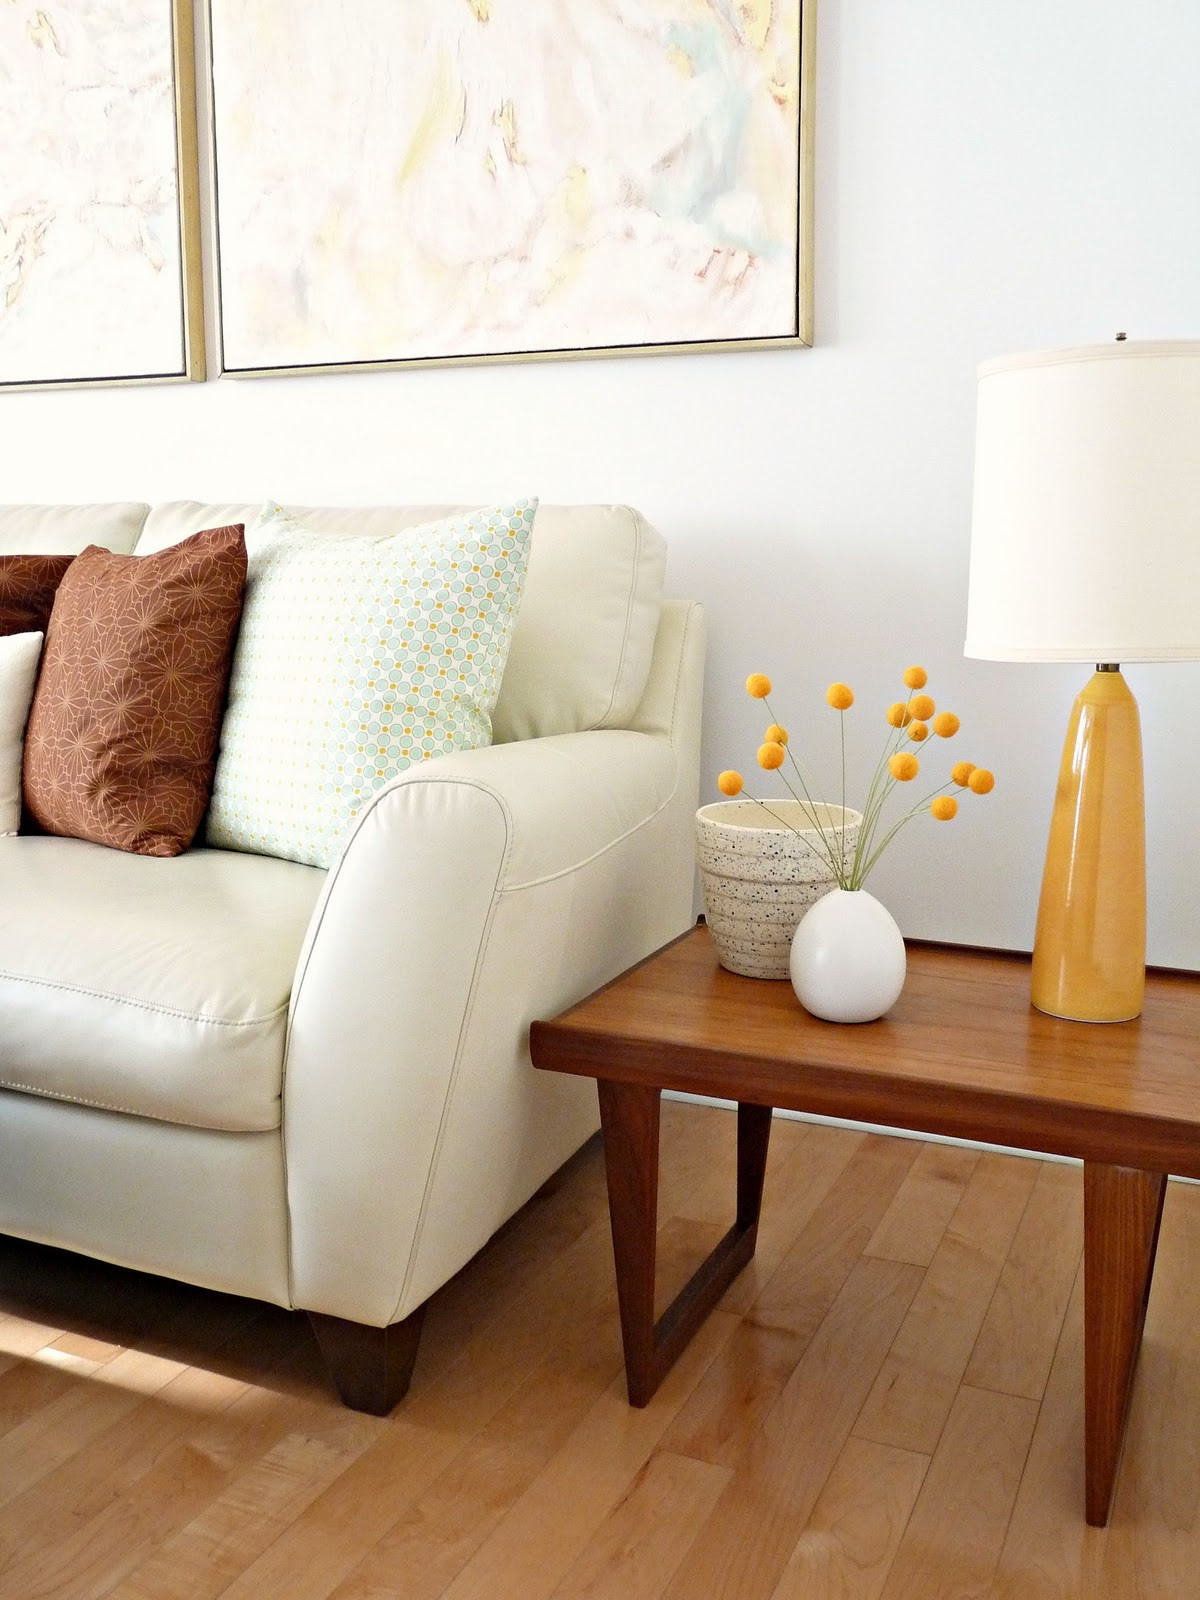 Small wooden oak end tables for cheap end tables living room ideas raysa house for Cheap oak living room furniture